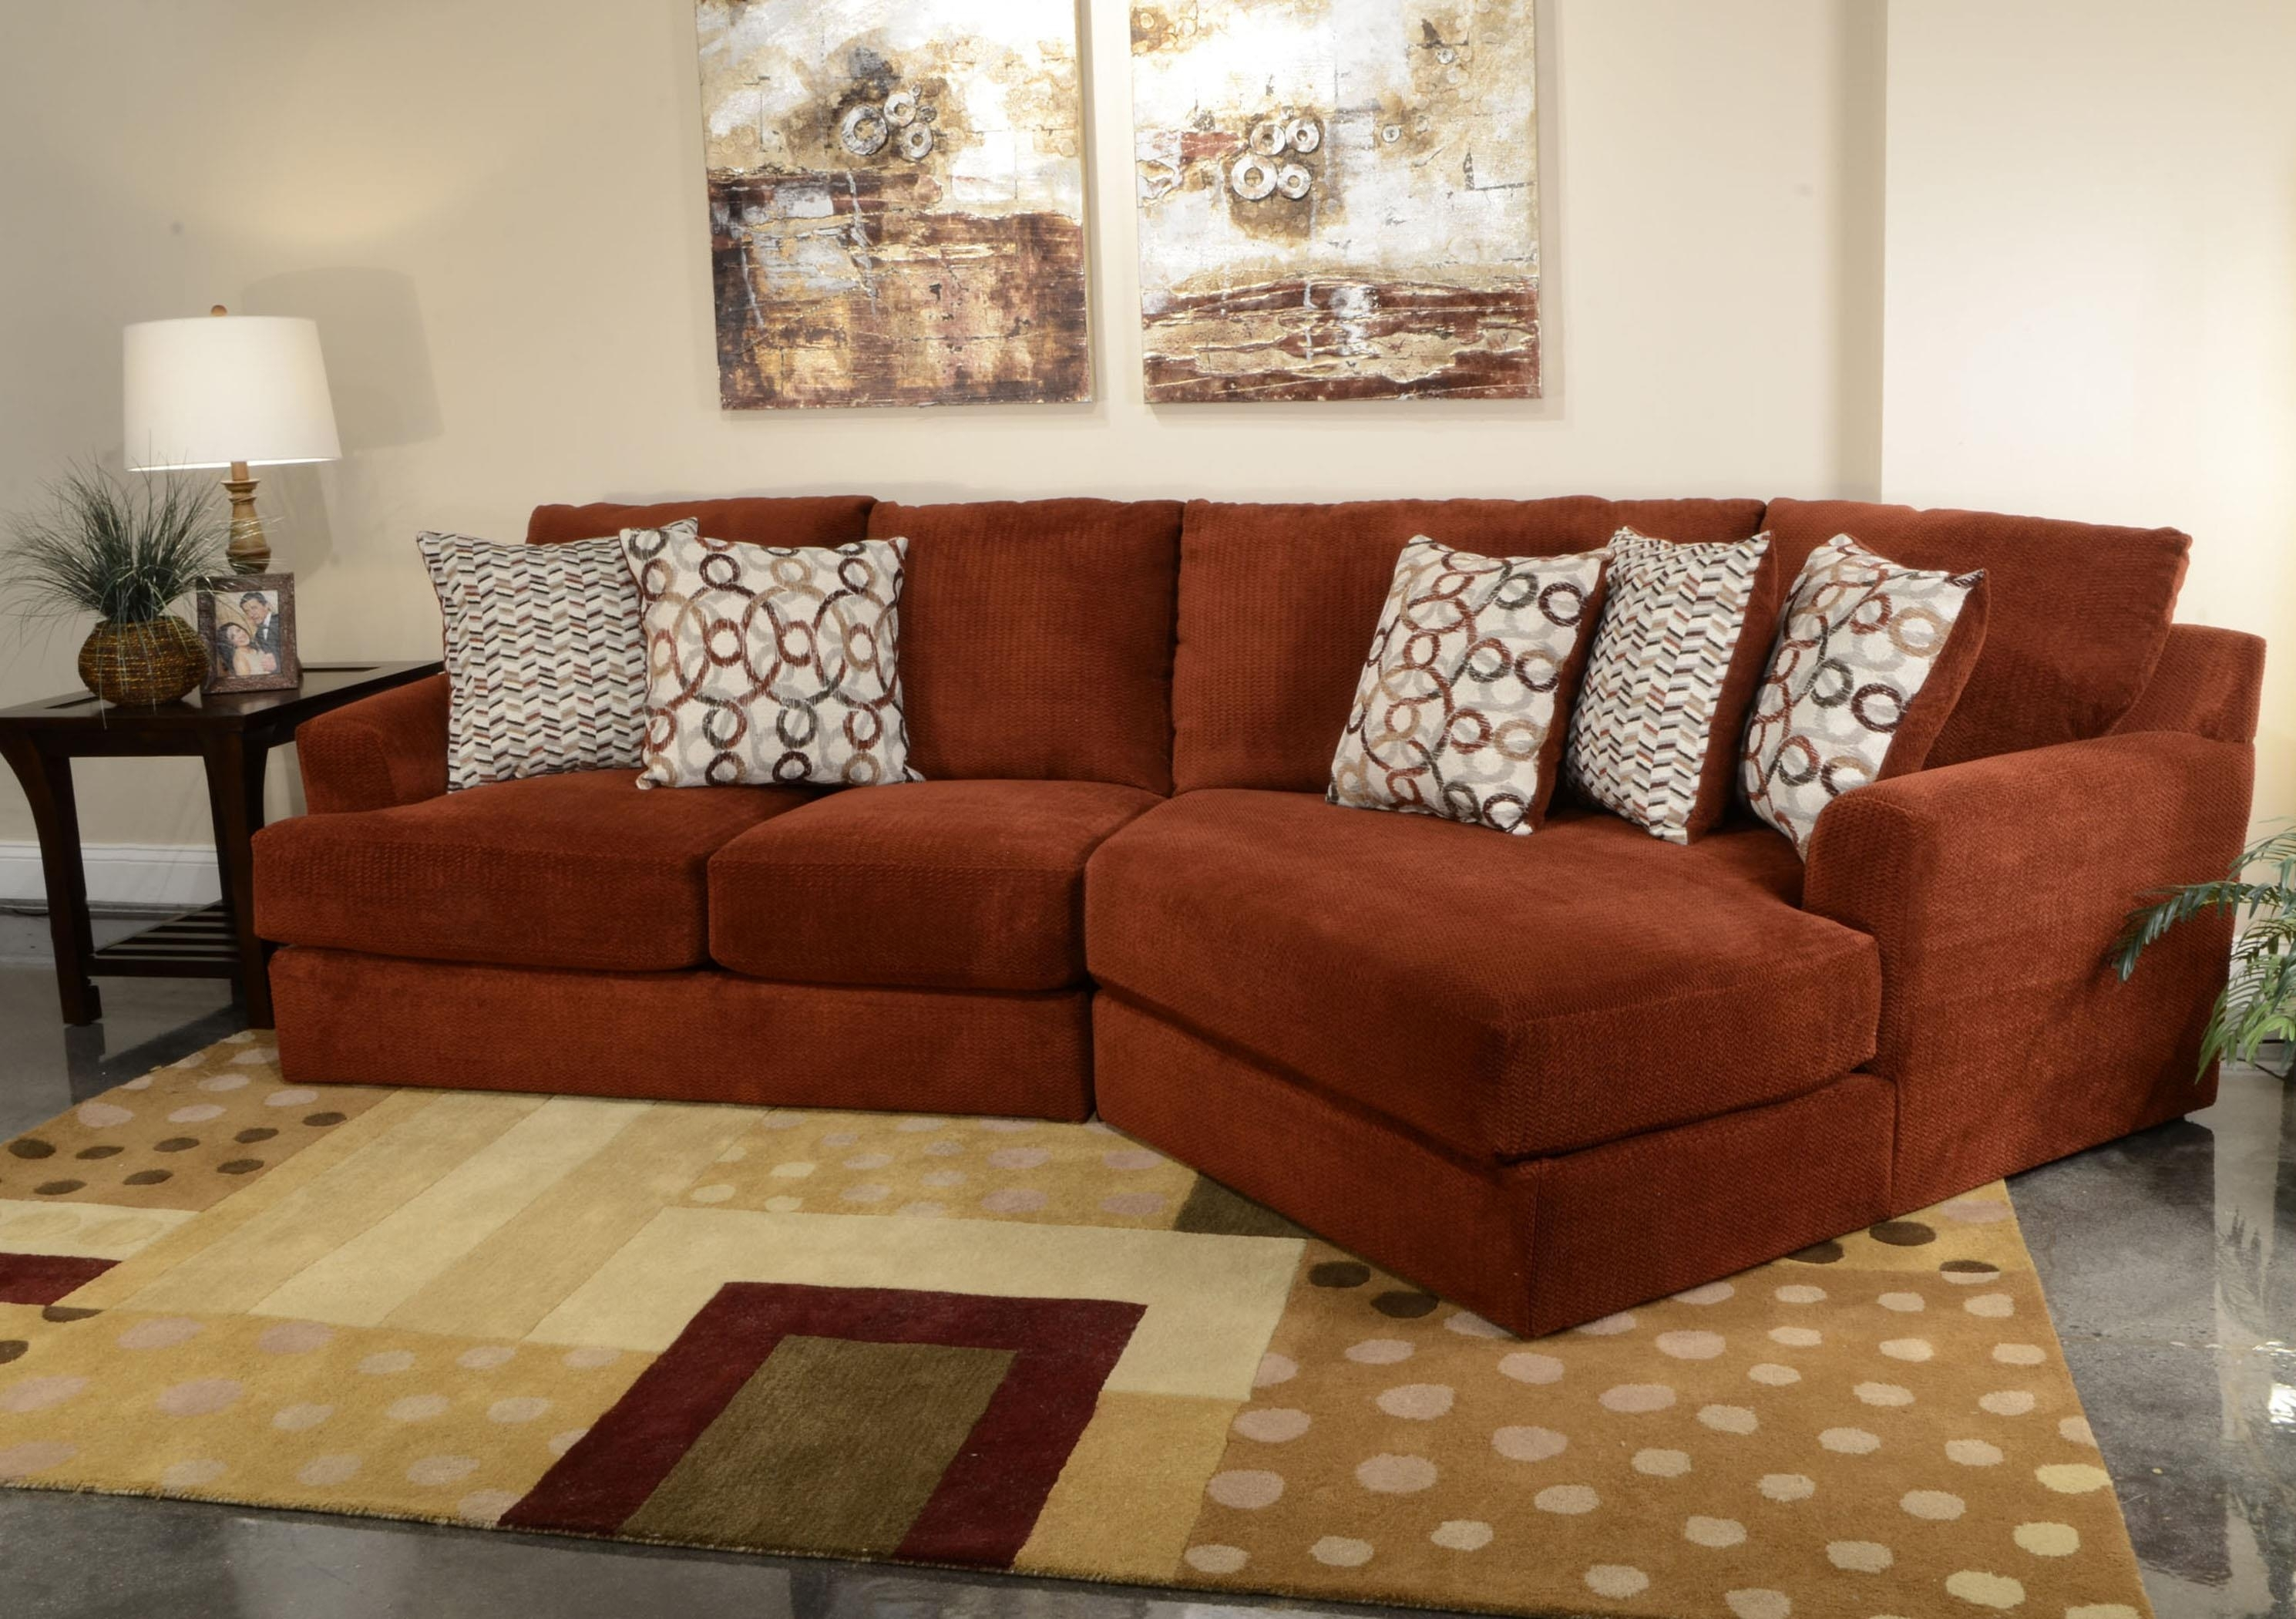 Small Three Seat Sectional Sofajackson Furniture | Wolf And in Jackson Tn Sectional Sofas (Image 9 of 10)